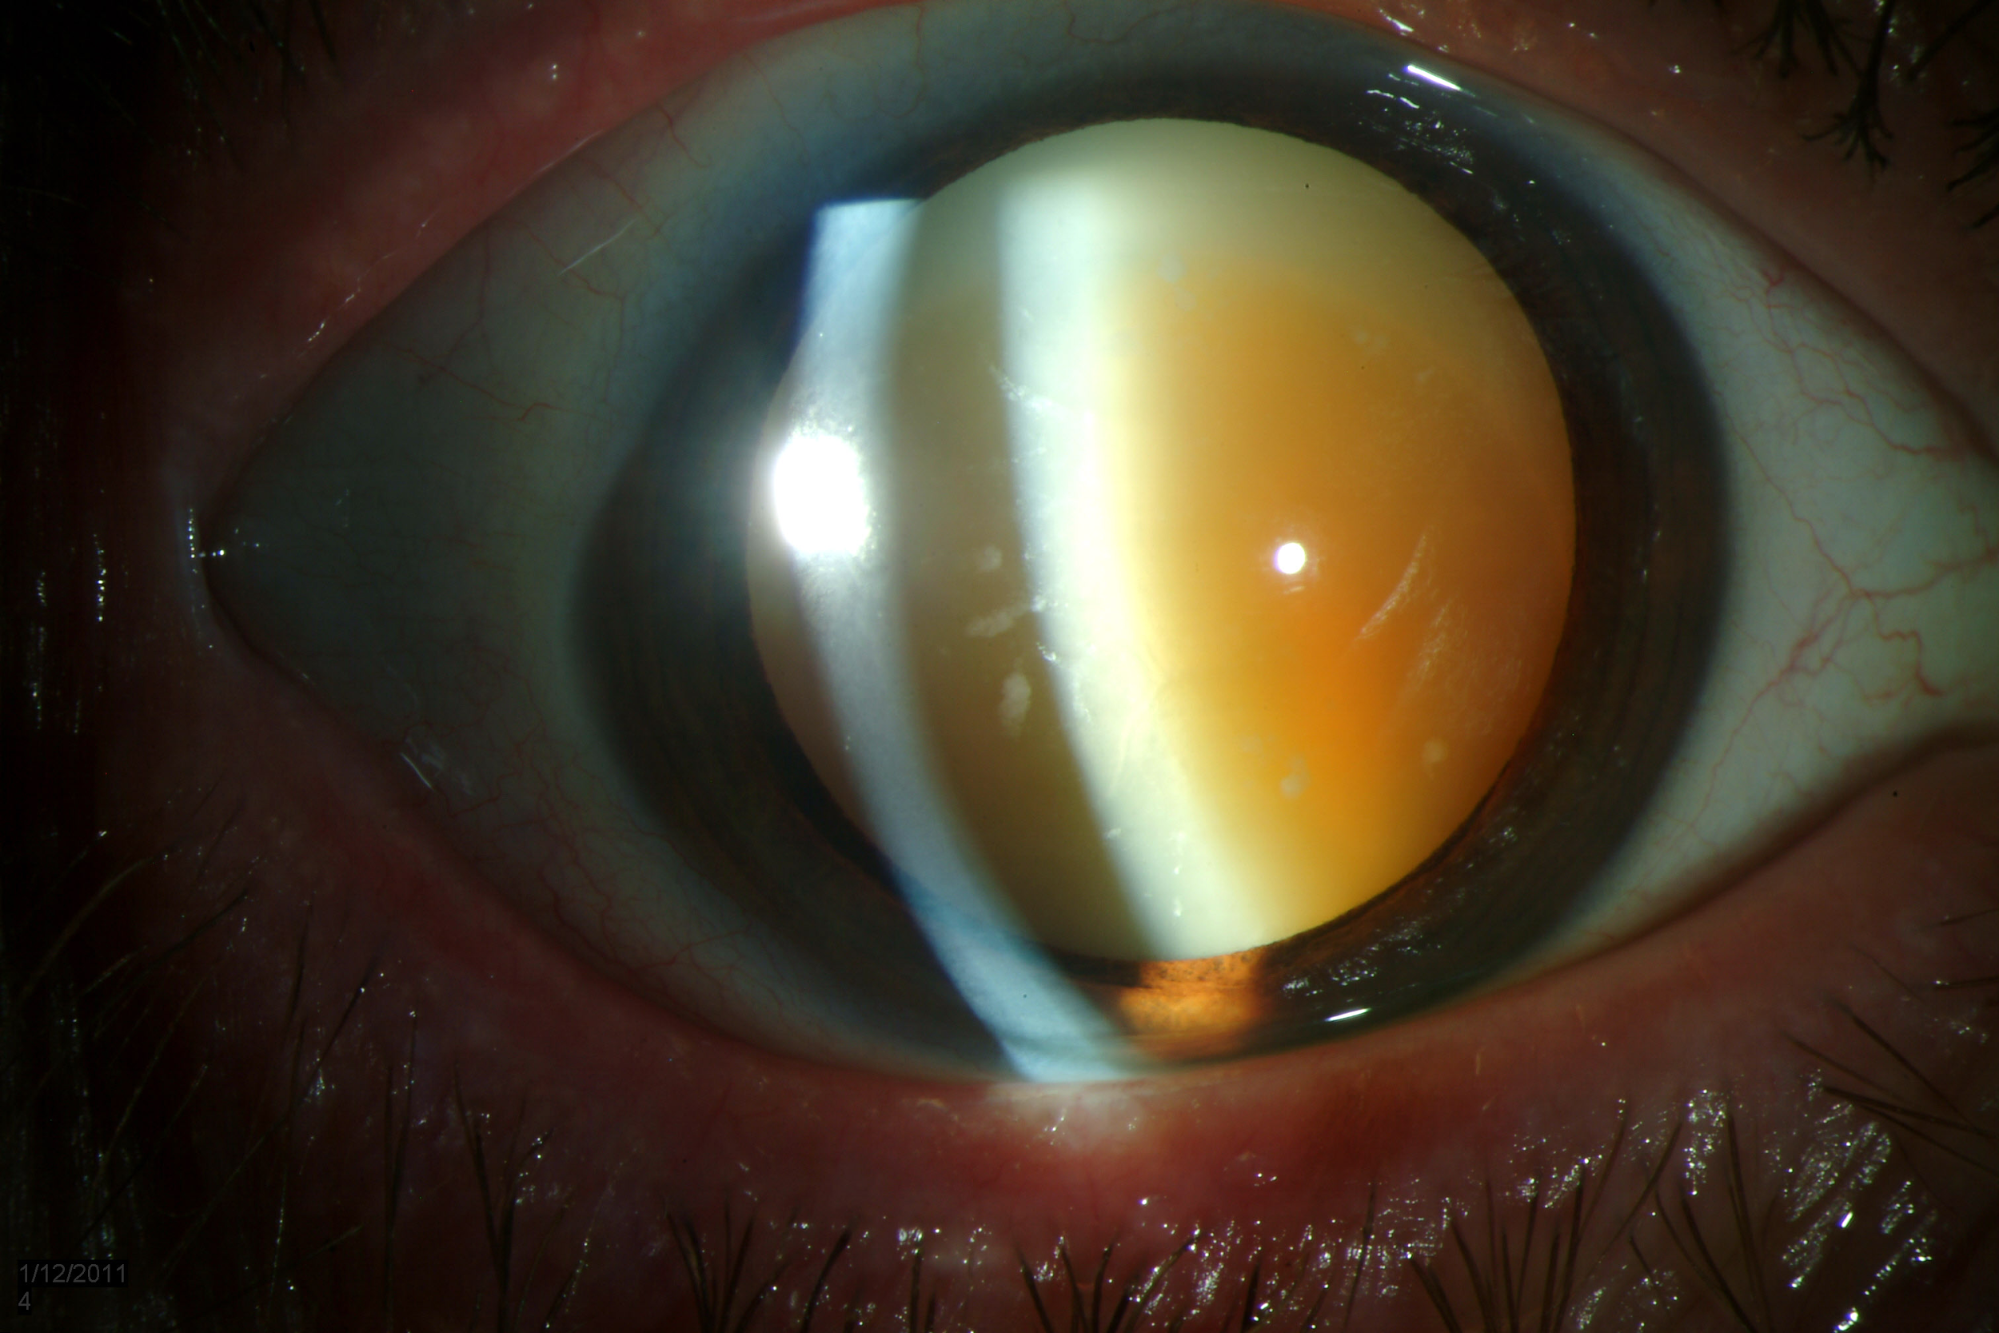 Mature nucler sclerotic cataract